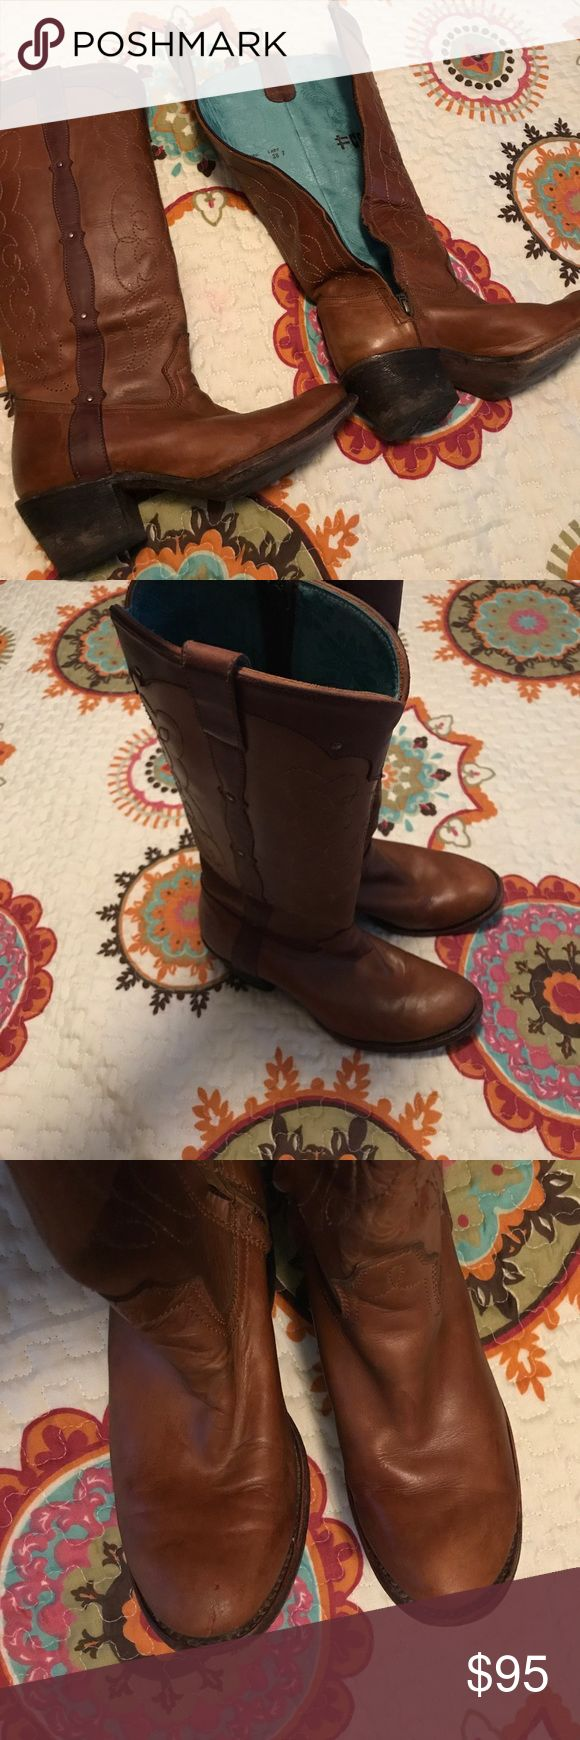 Corral Vintage boots Corral Vintage boots size 8M Nice corral boots with normal wear on the toes, zipper works perfect Corral Shoes Combat & Moto Boots